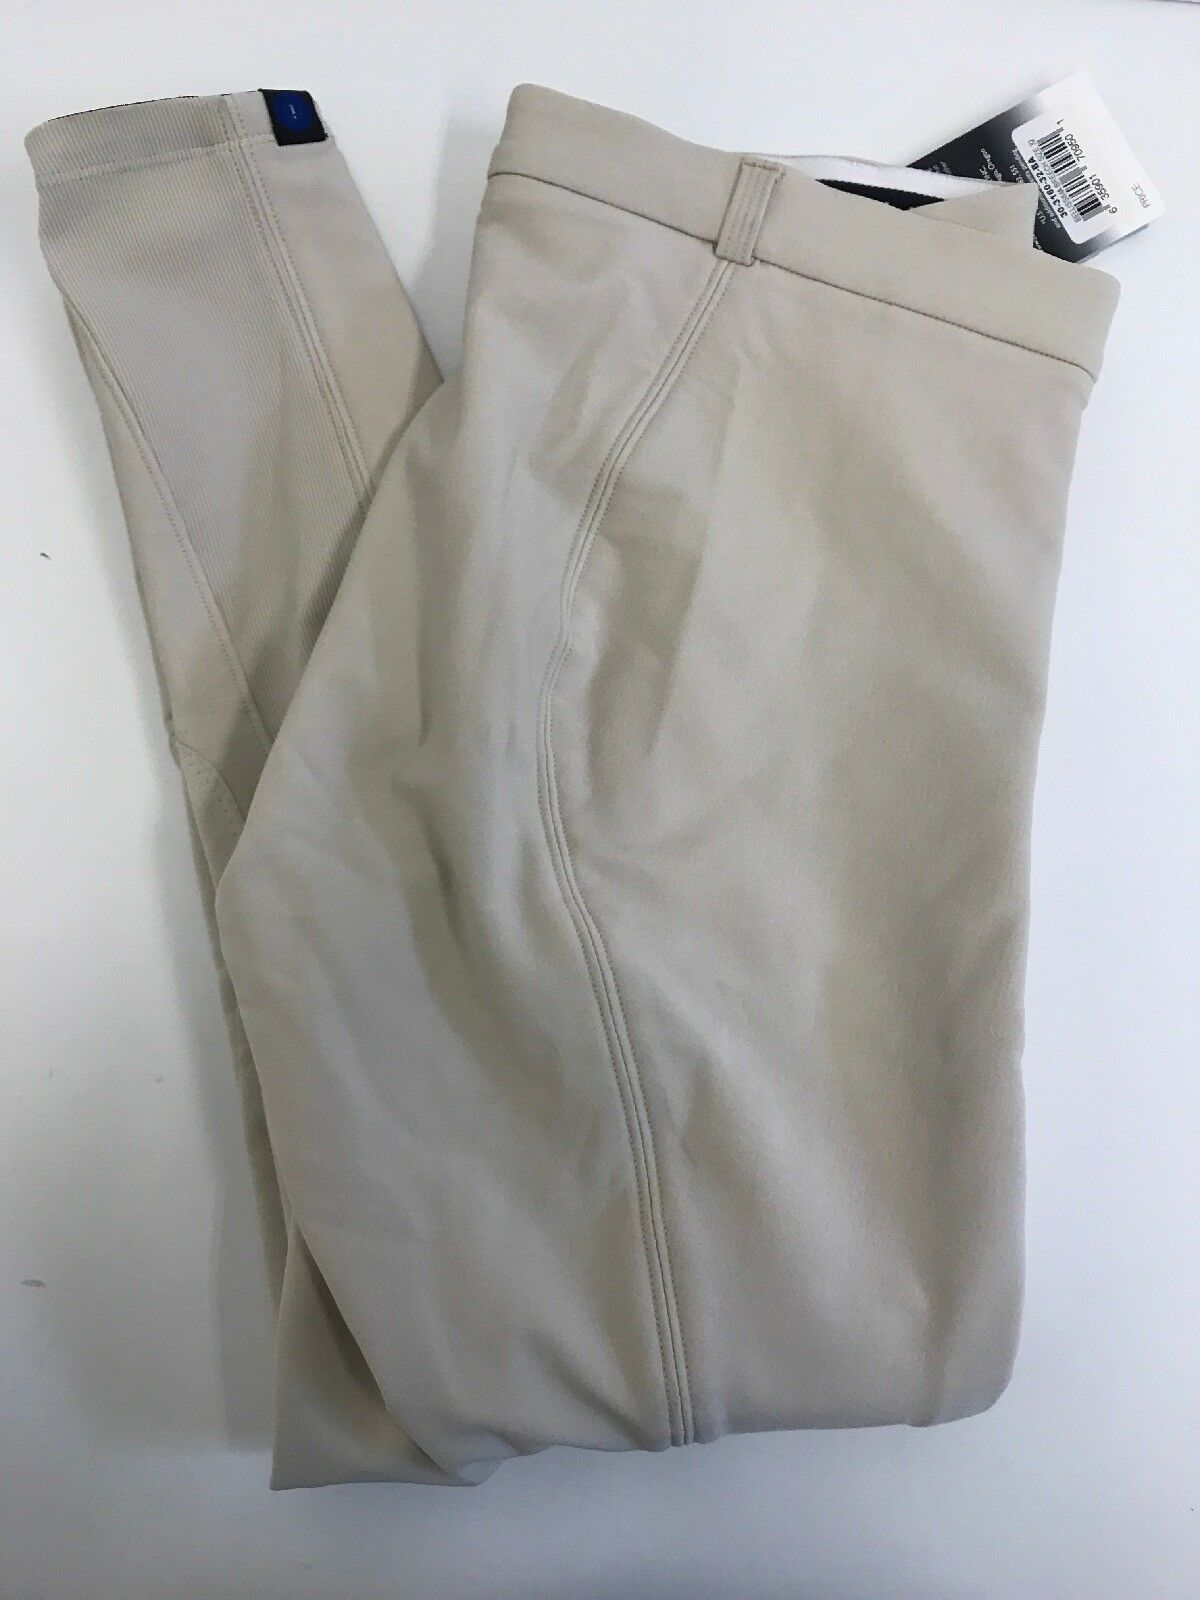 Irrideon Women's Bellissima Breeches Knee Patch Ivory  Light Tan Size 32 NWT  here has the latest